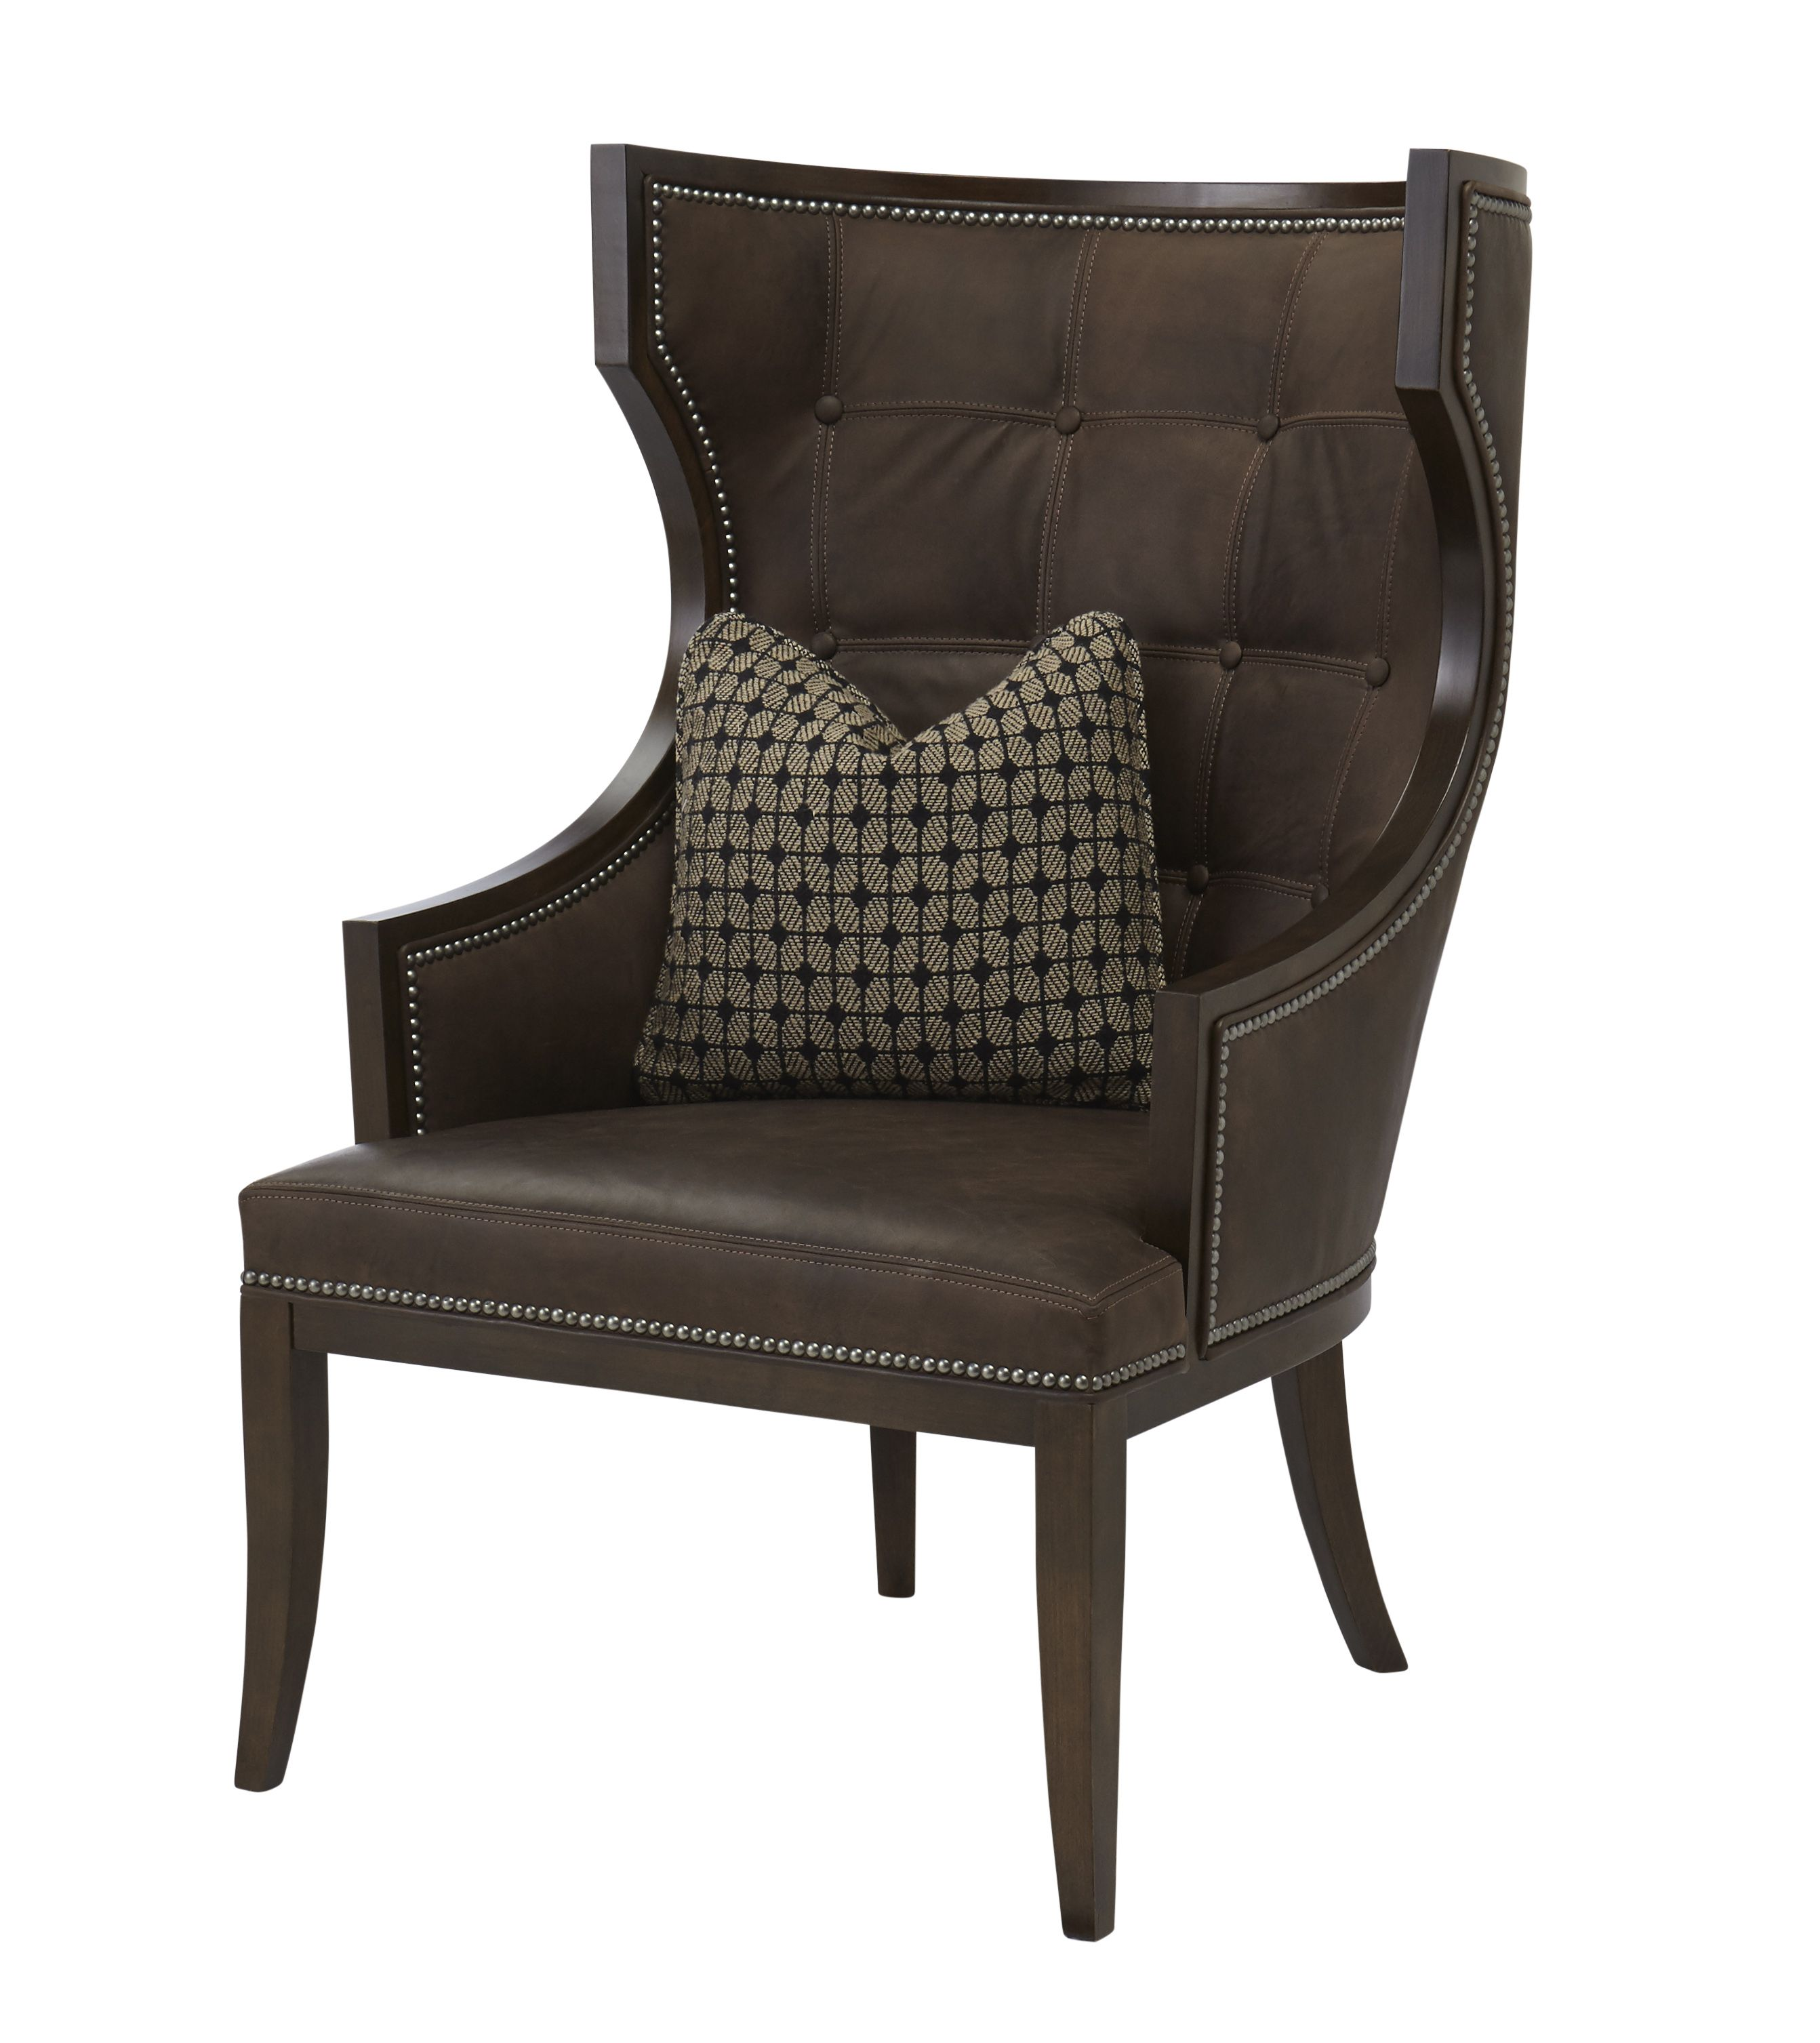 Western Chairs Massoud Hugo Western Chair Western Accent Chairs Chair Accent